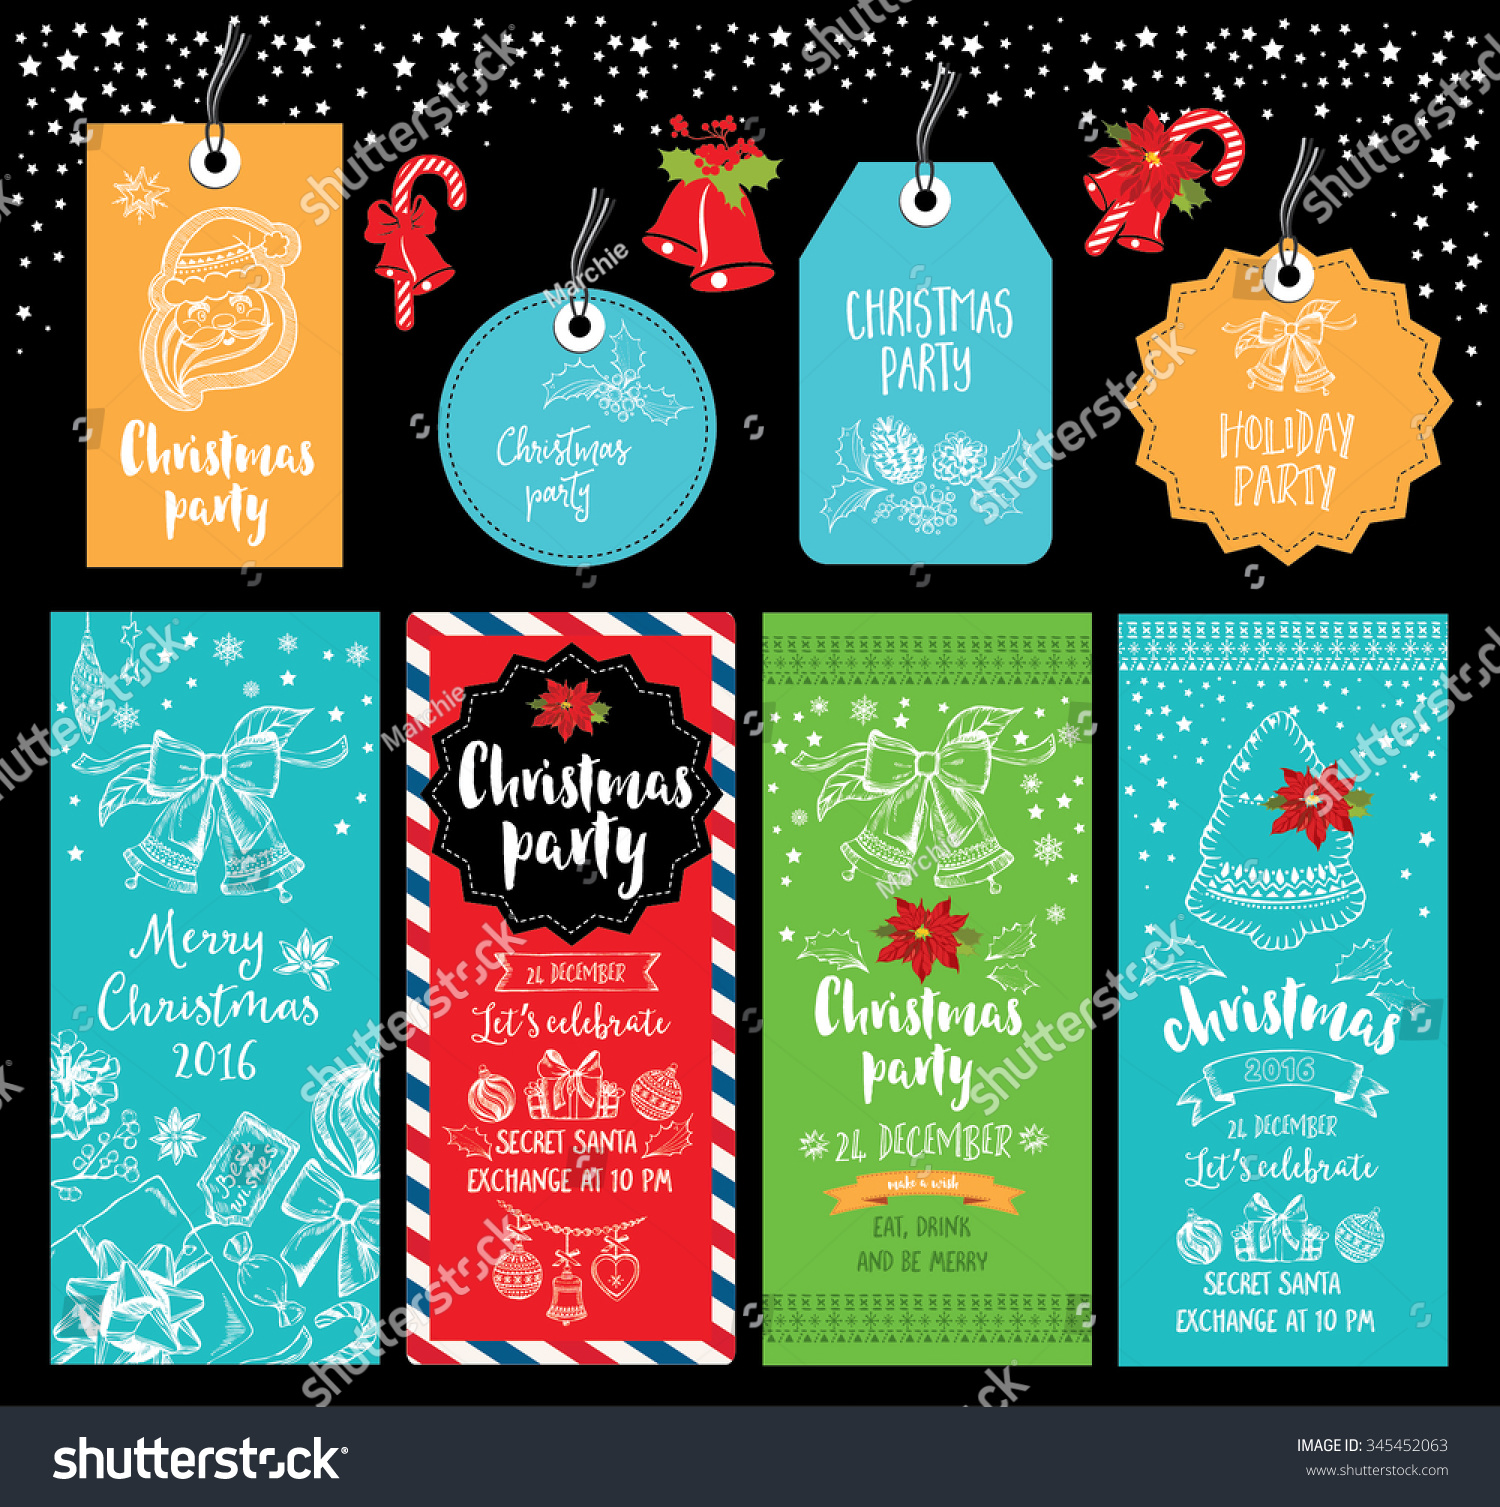 Vector christmas party invitation toys holiday stock vector vector christmas party invitation toys holiday stock vector 345452063 shutterstock stopboris Image collections